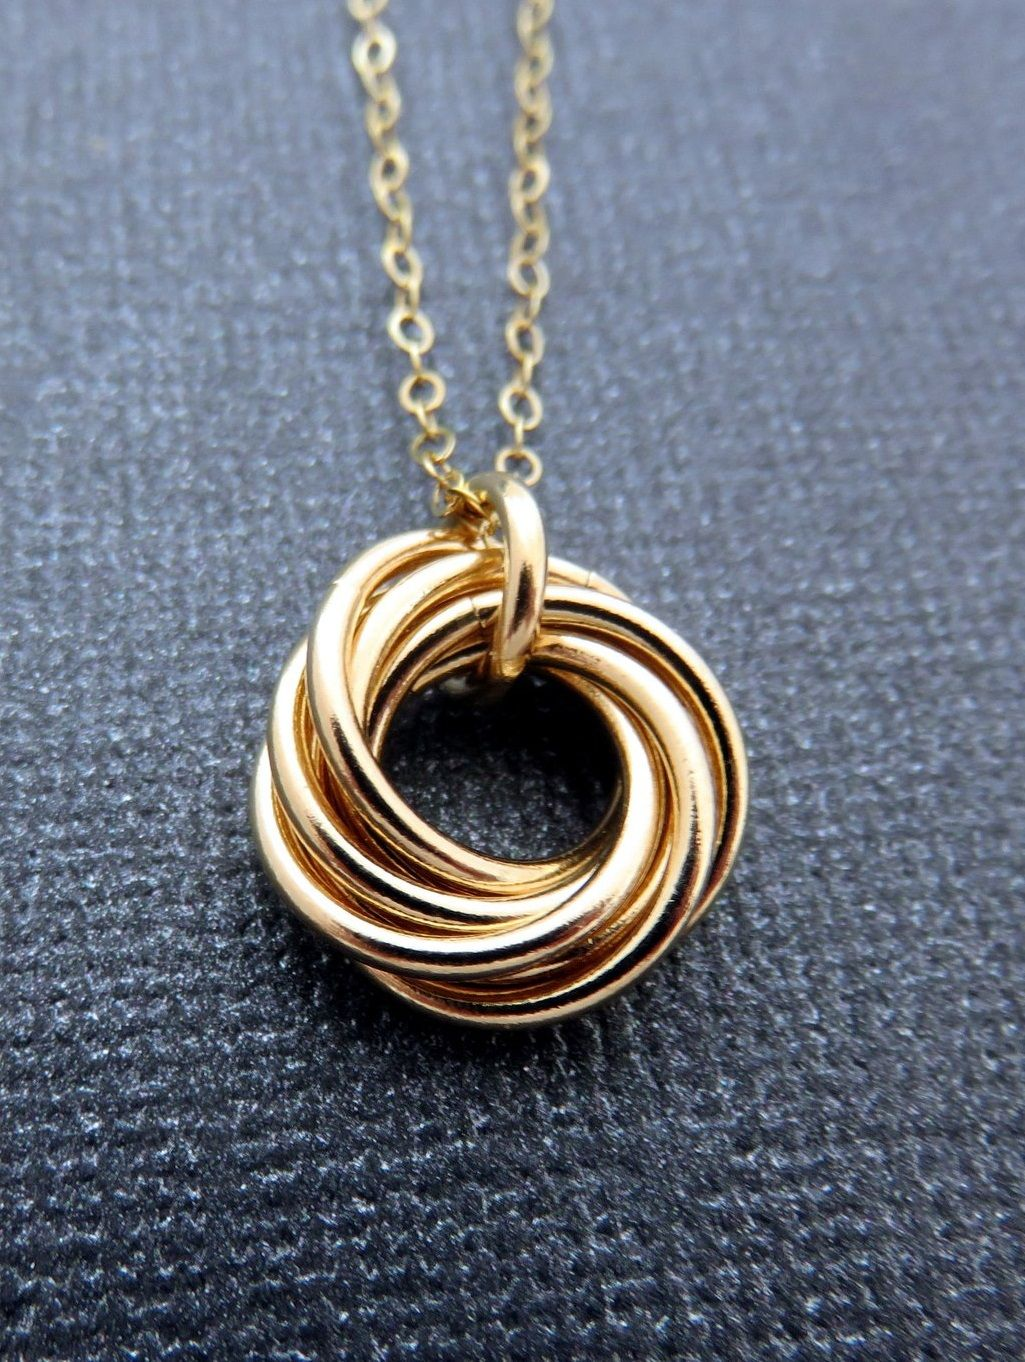 70th Birthday Gift For Women Seven Gold Ring Necklace Handmade